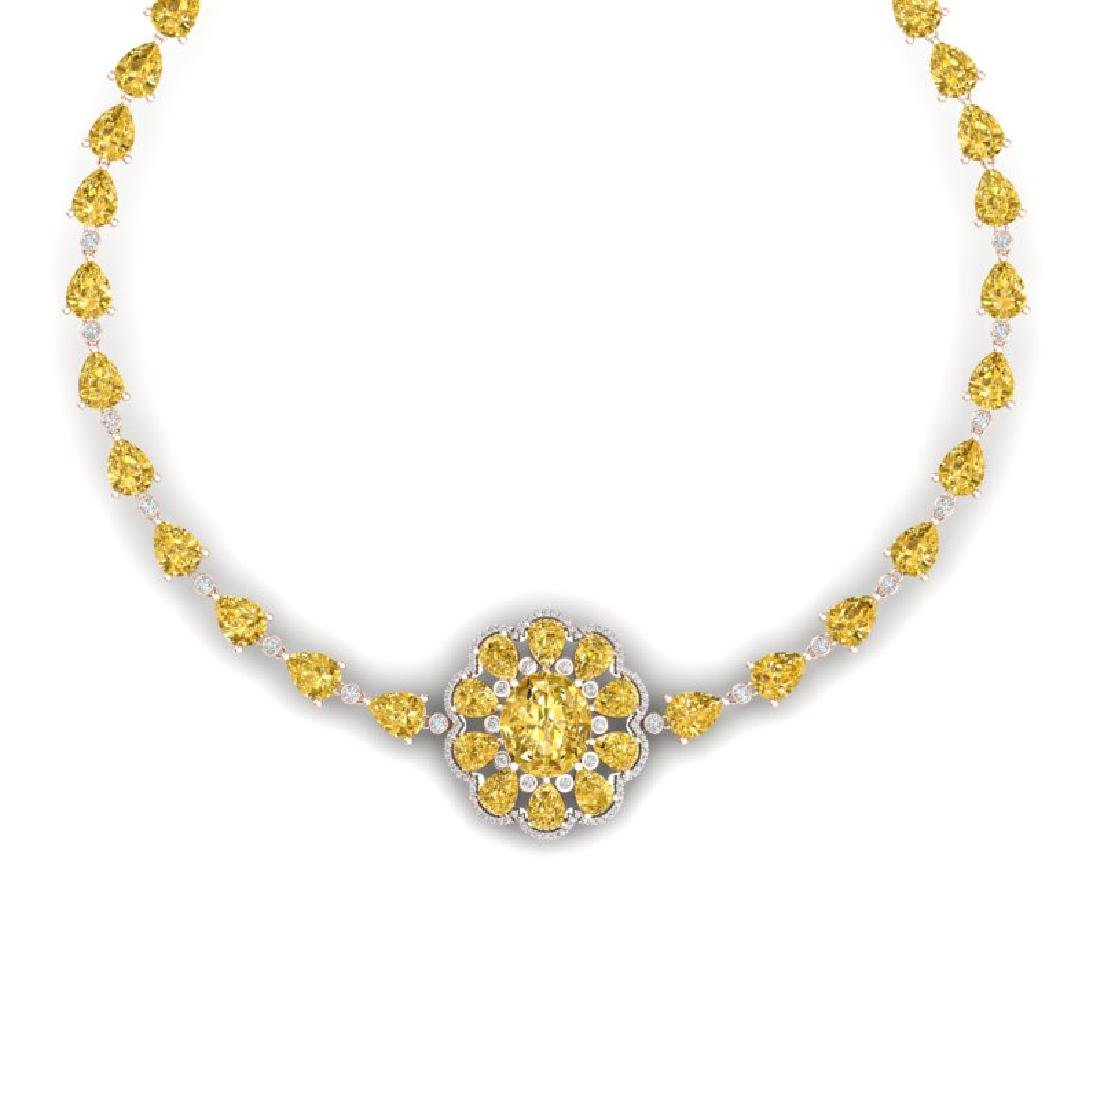 72.38 CTW Royalty Canary Citrine & VS Diamond Necklace - 2